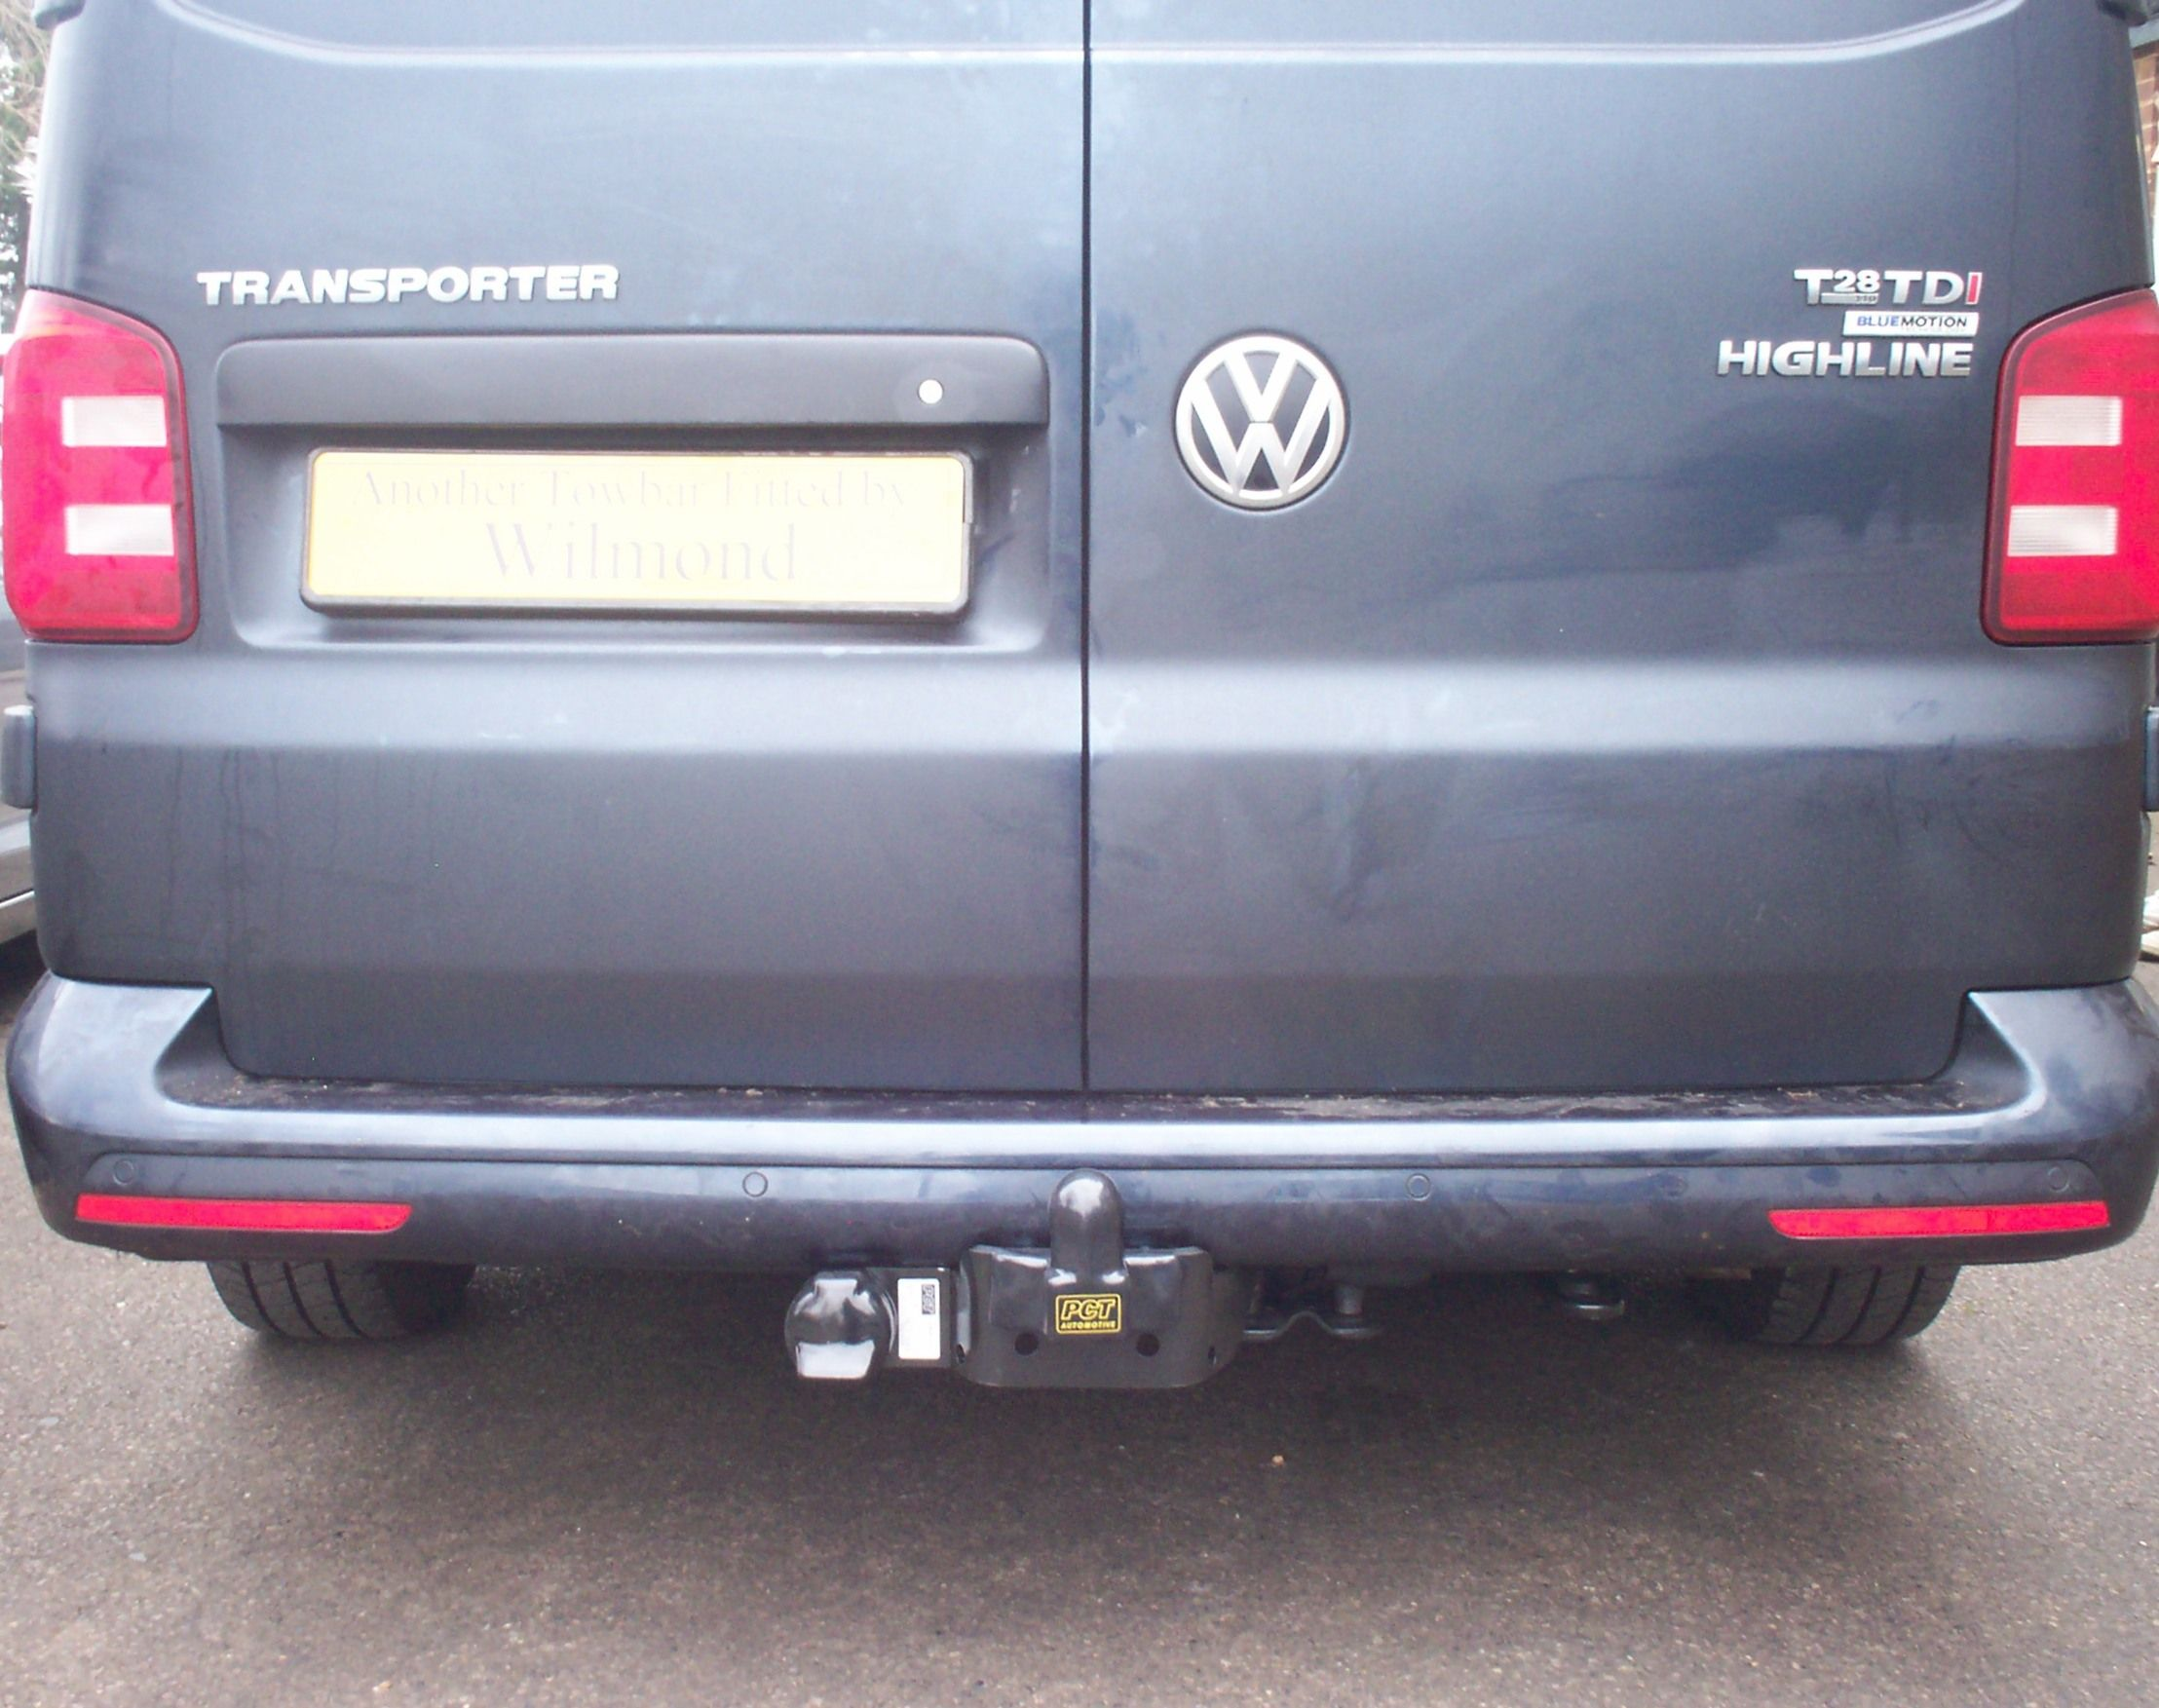 Vw T5 Trailer Wiring Diagram Vapor Compression Refrigeration Cycle Pv A Volkswagen Transporter T6 With Pct Automotive Flange